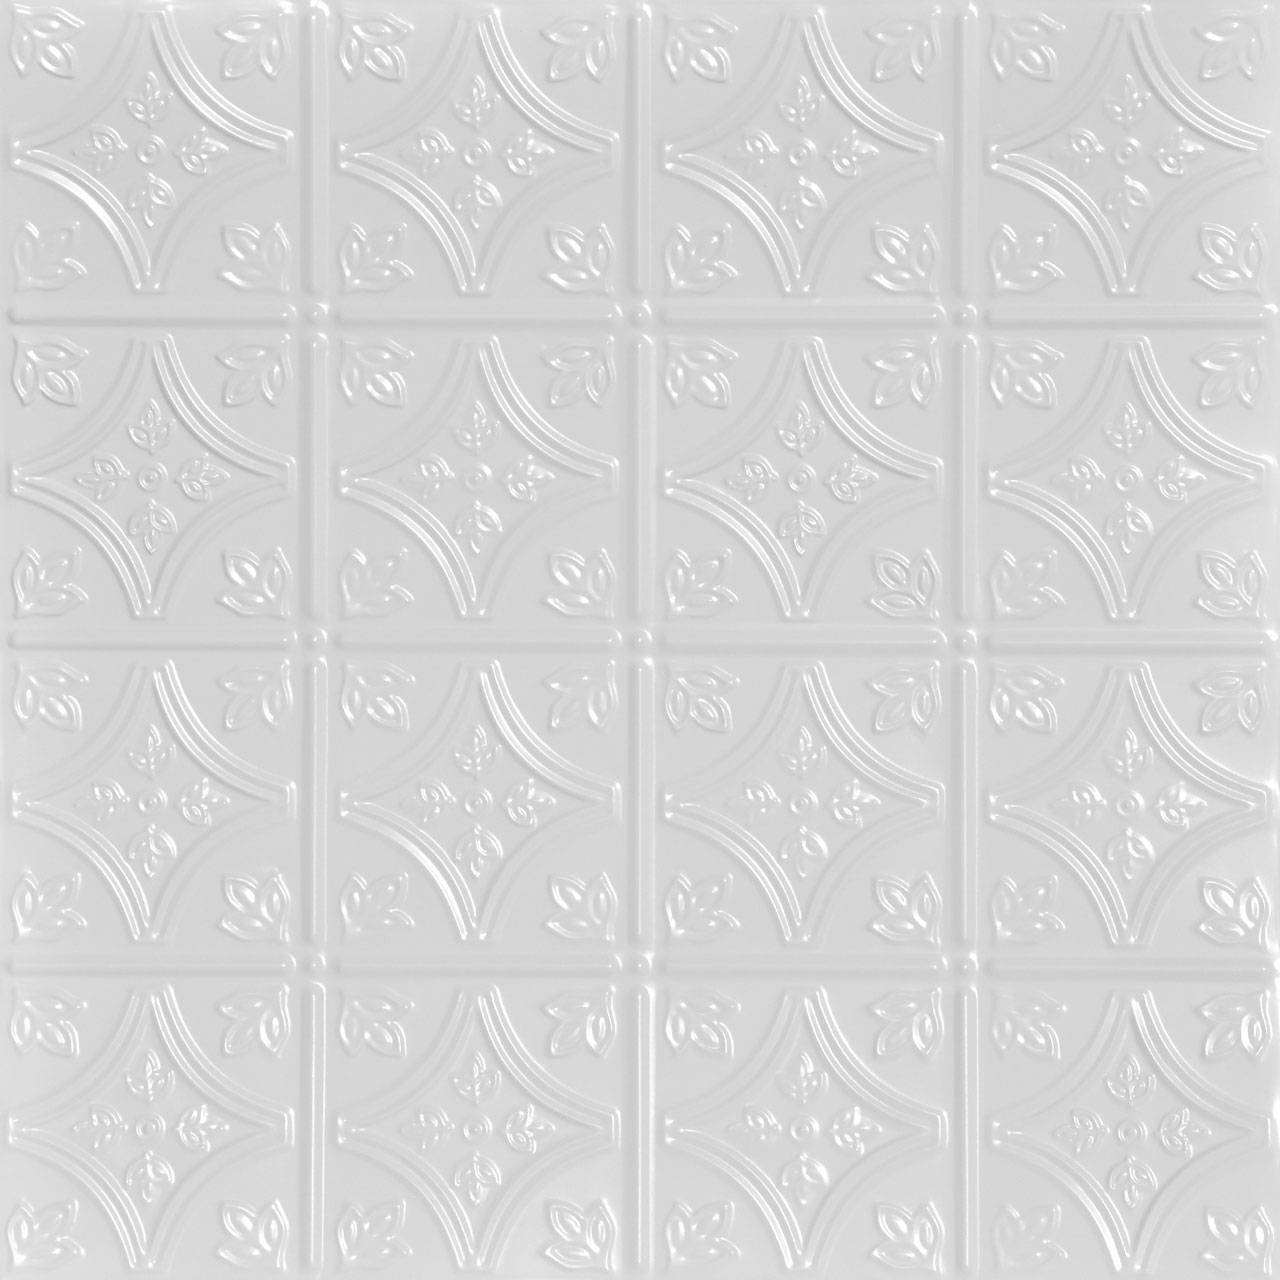 Tiny Tiptoe 2 ft x 2 ft Shanko - Wall and Ceiling Patterns - #209 - (Pack of 12) - White